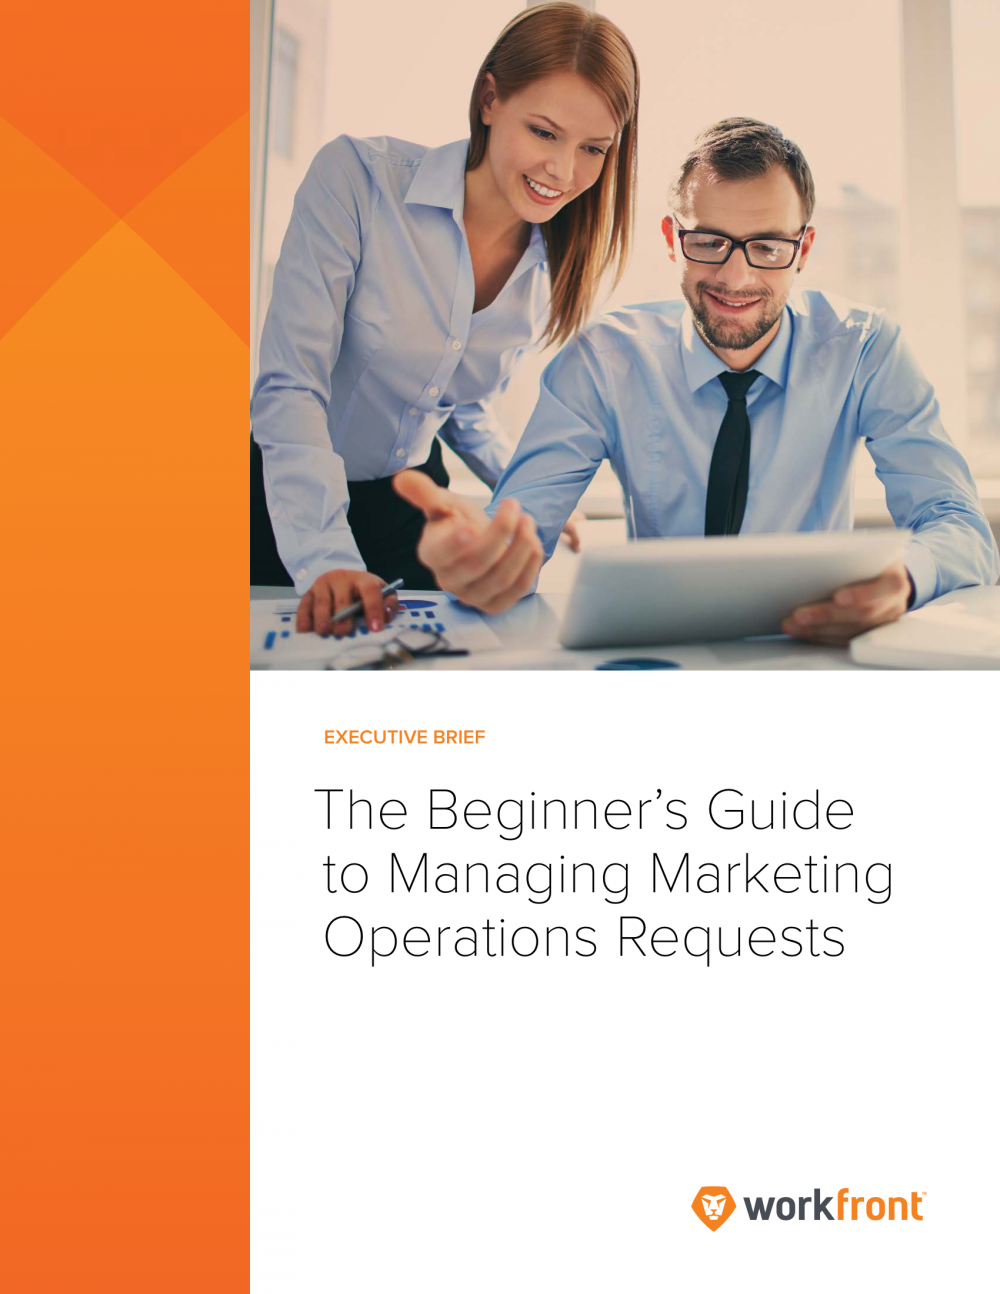 The Beginner's Guide to Managing Marketing Operations Requests